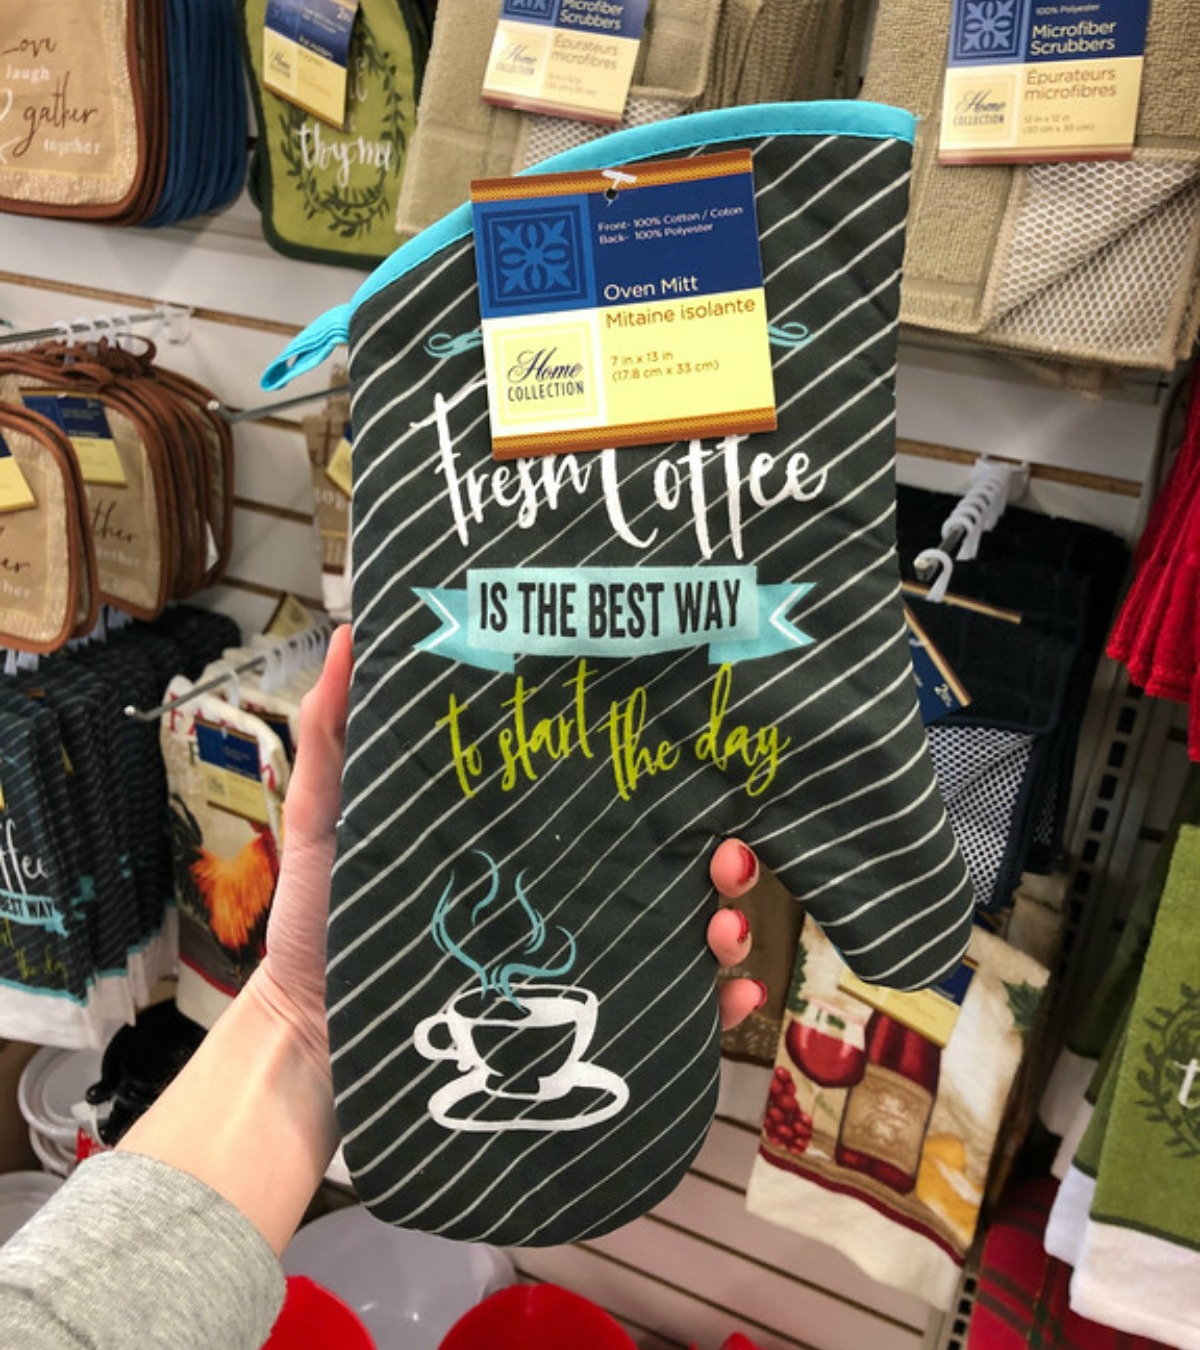 New Coffee Themed Kitchen Items Just $1 At Dollar Tree